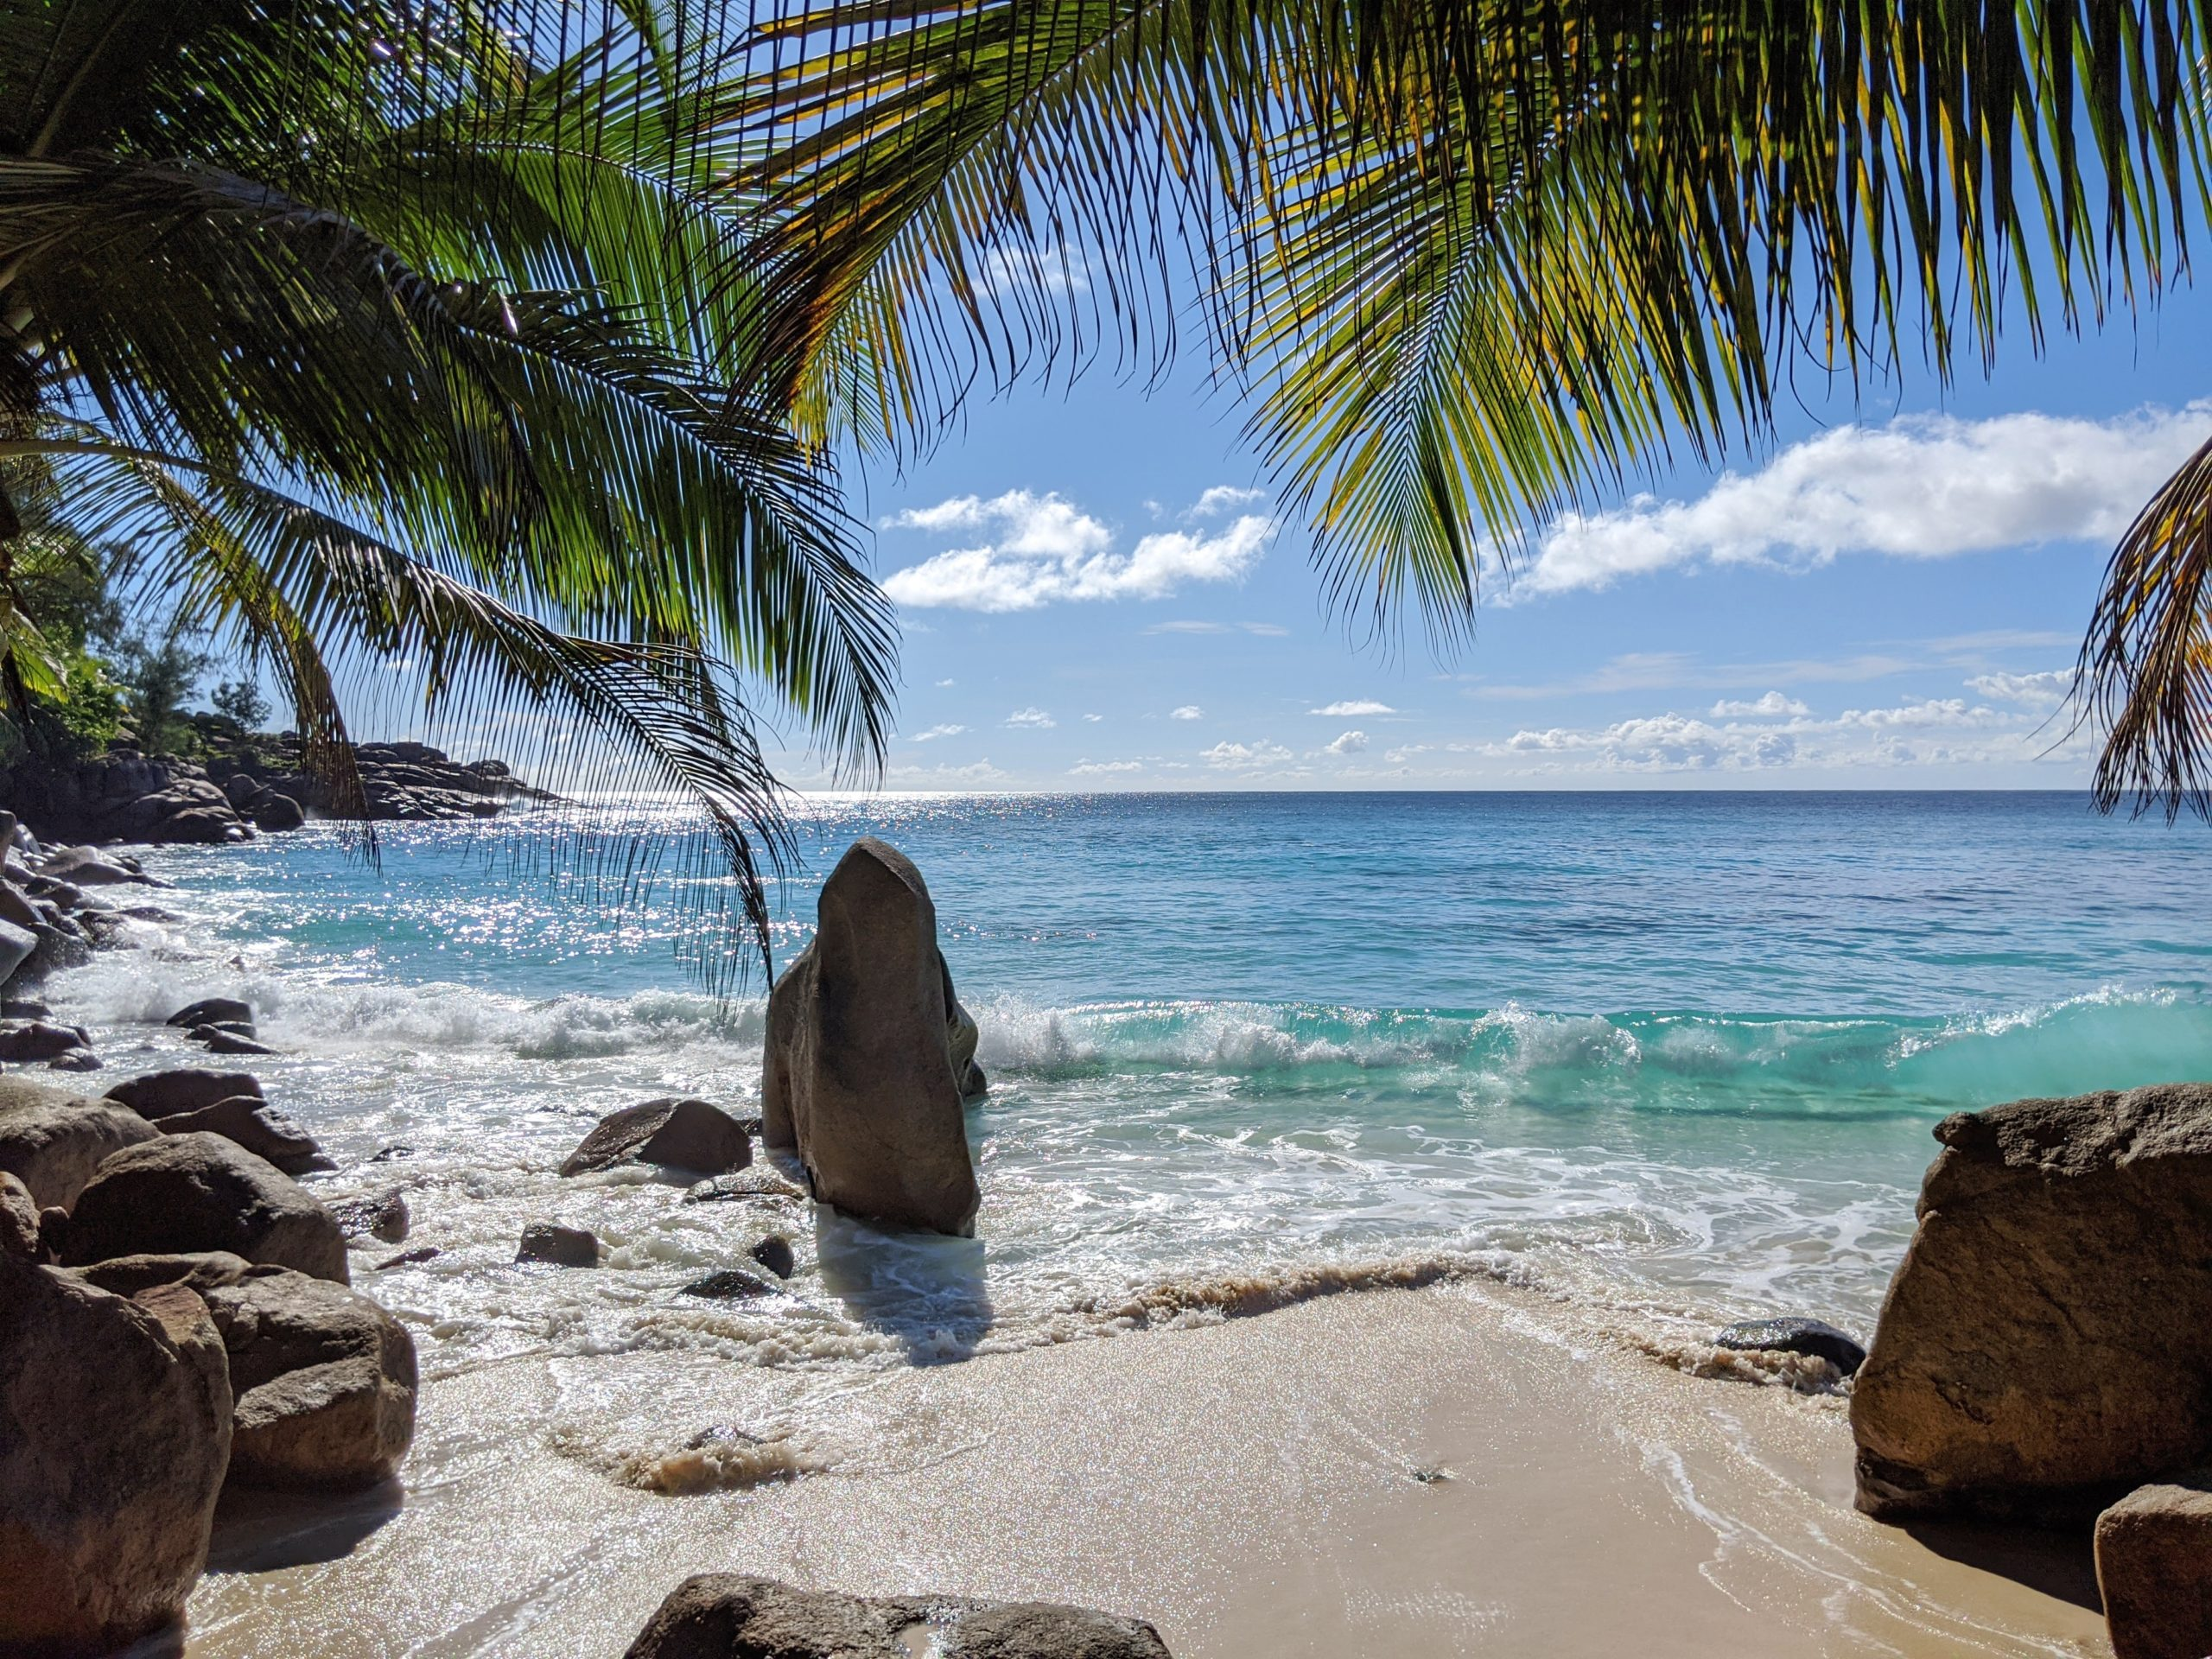 Palm Trees Beach and Oceans in the Seychelles